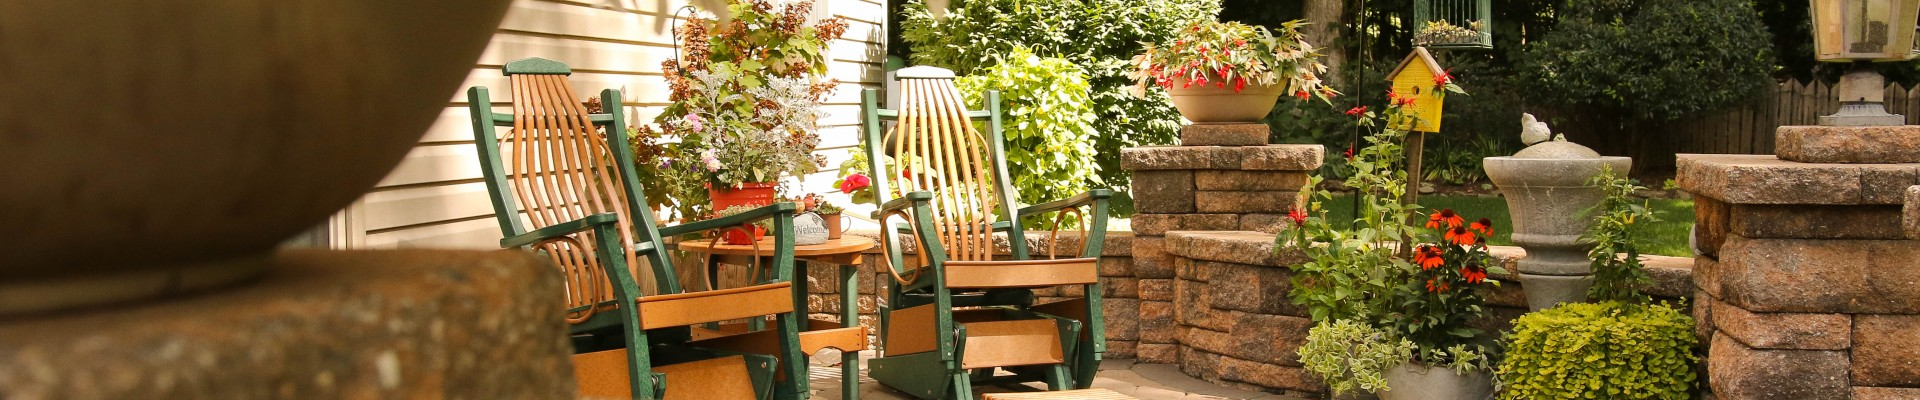 Your Patio Builder in PA